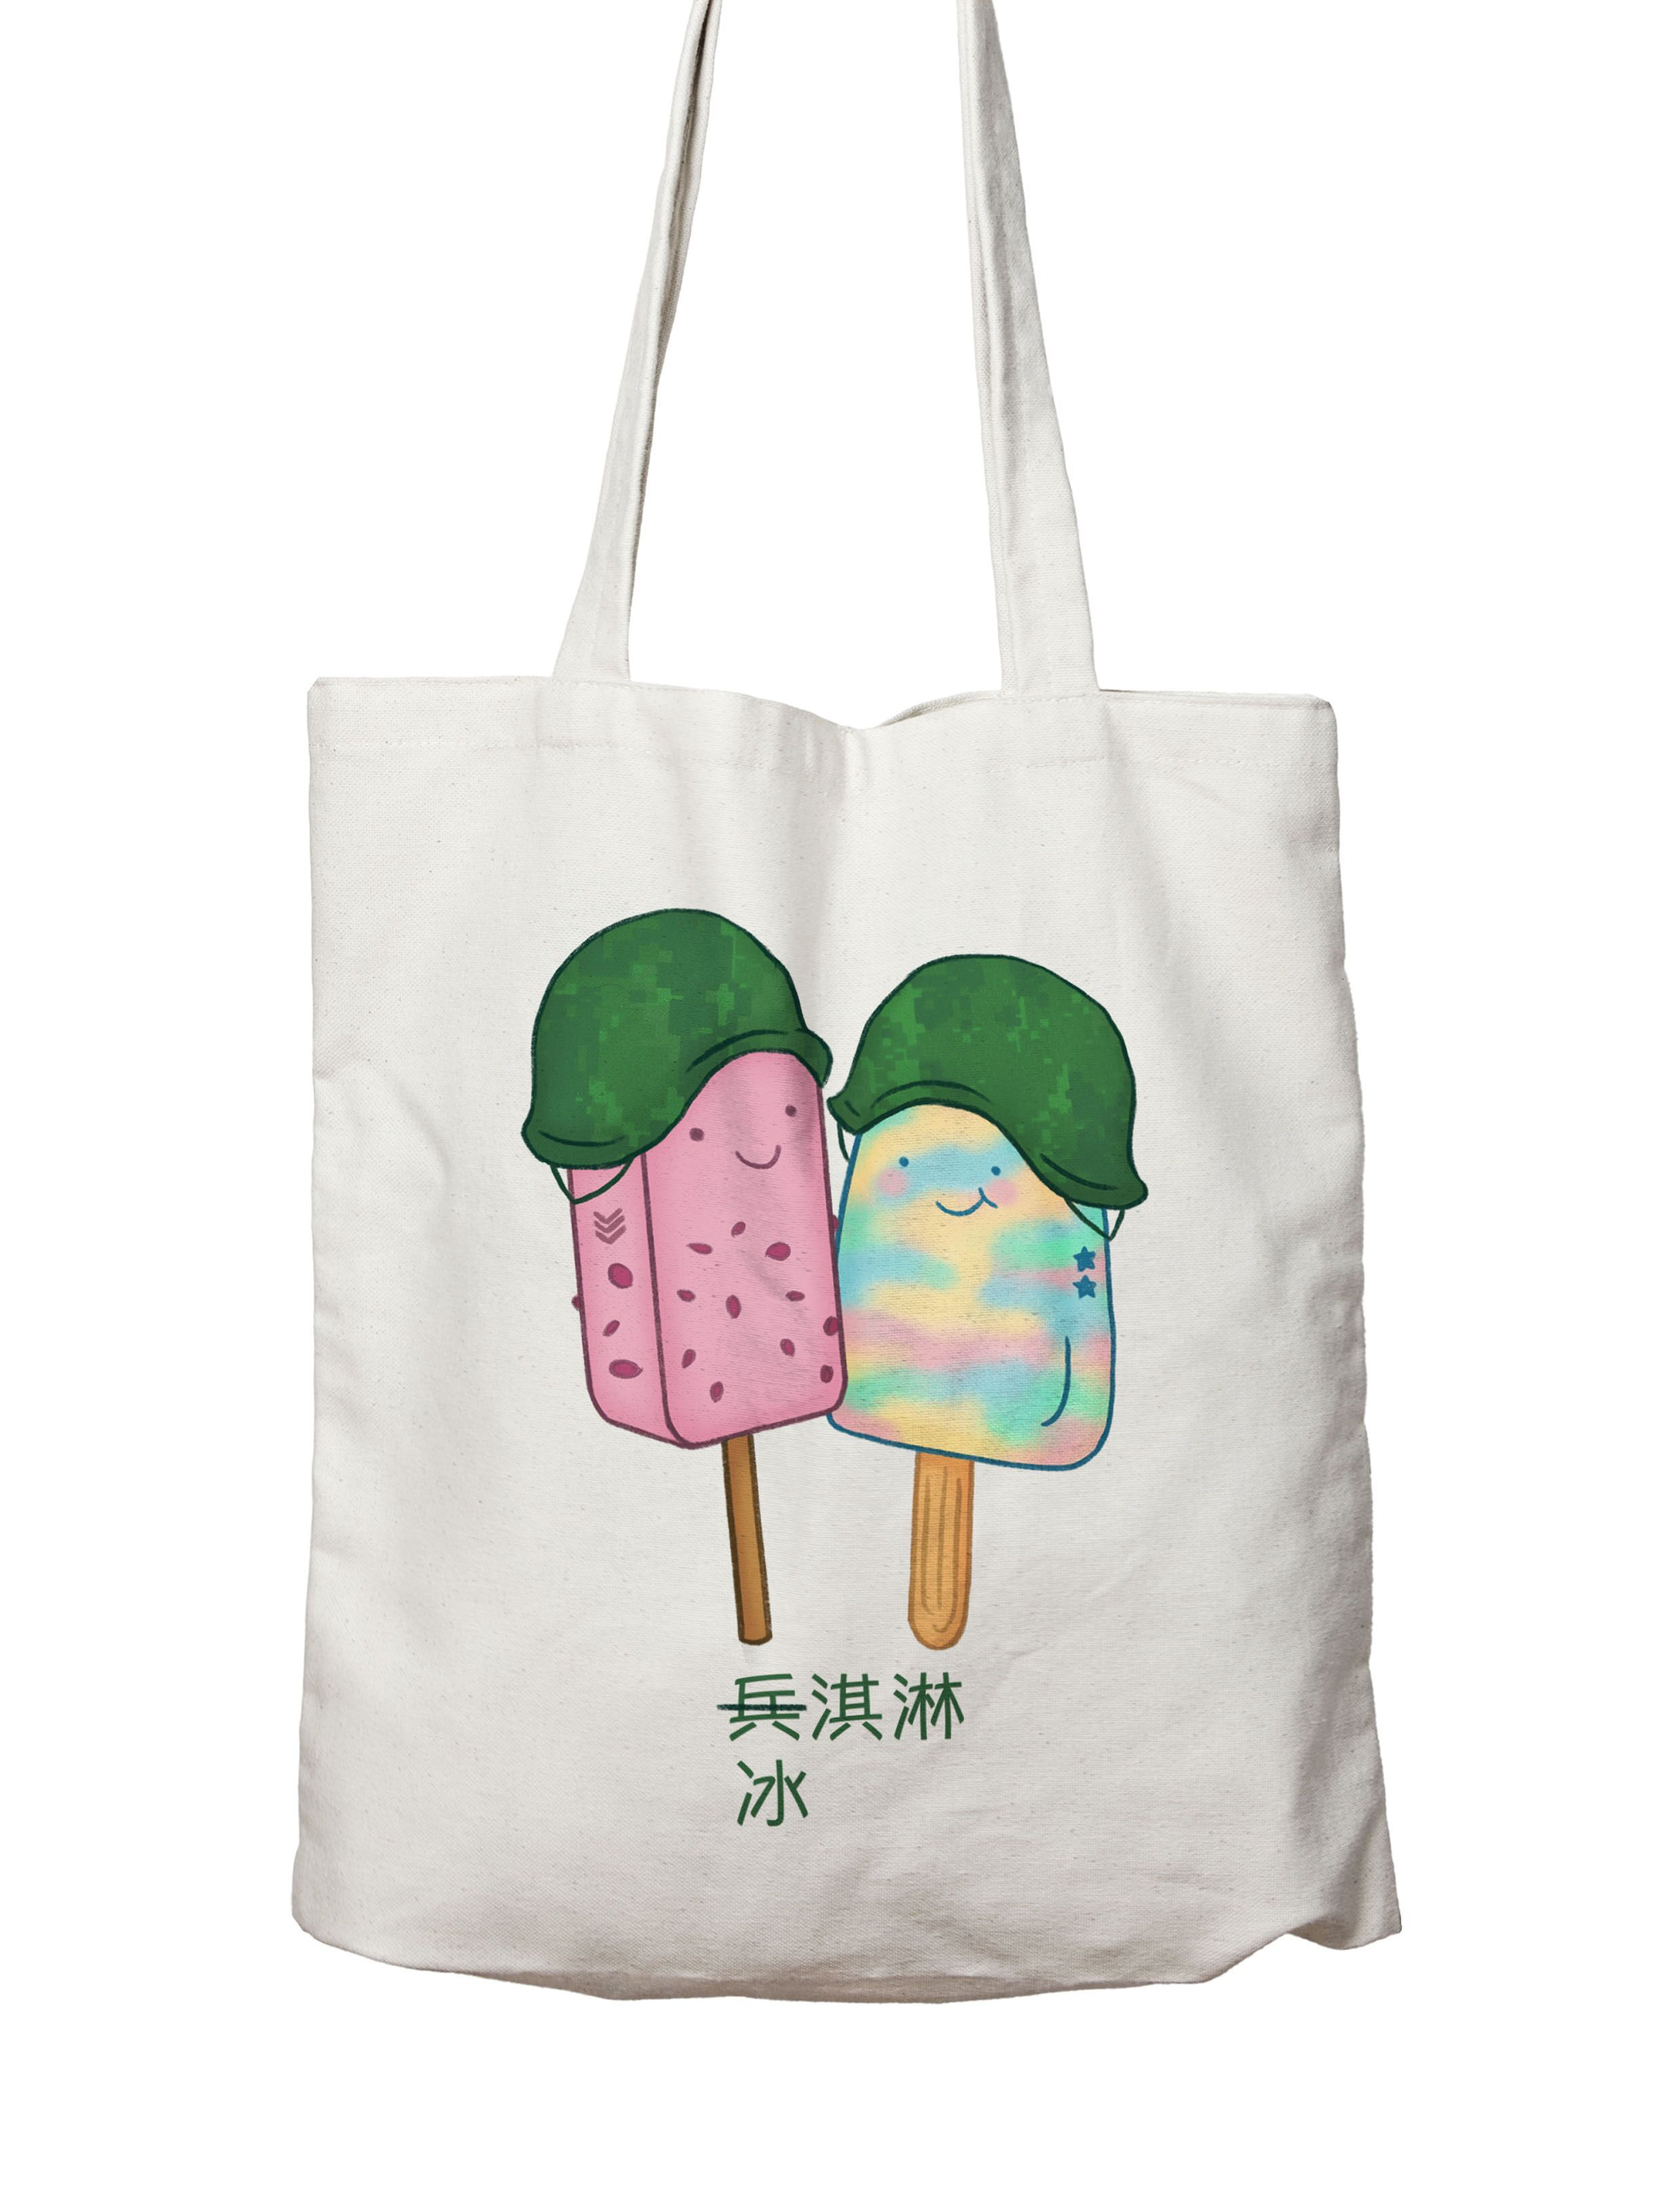 Ice Cream Soldiers Chinese Pun Tote Bag Tote Bags A Wild Exploration